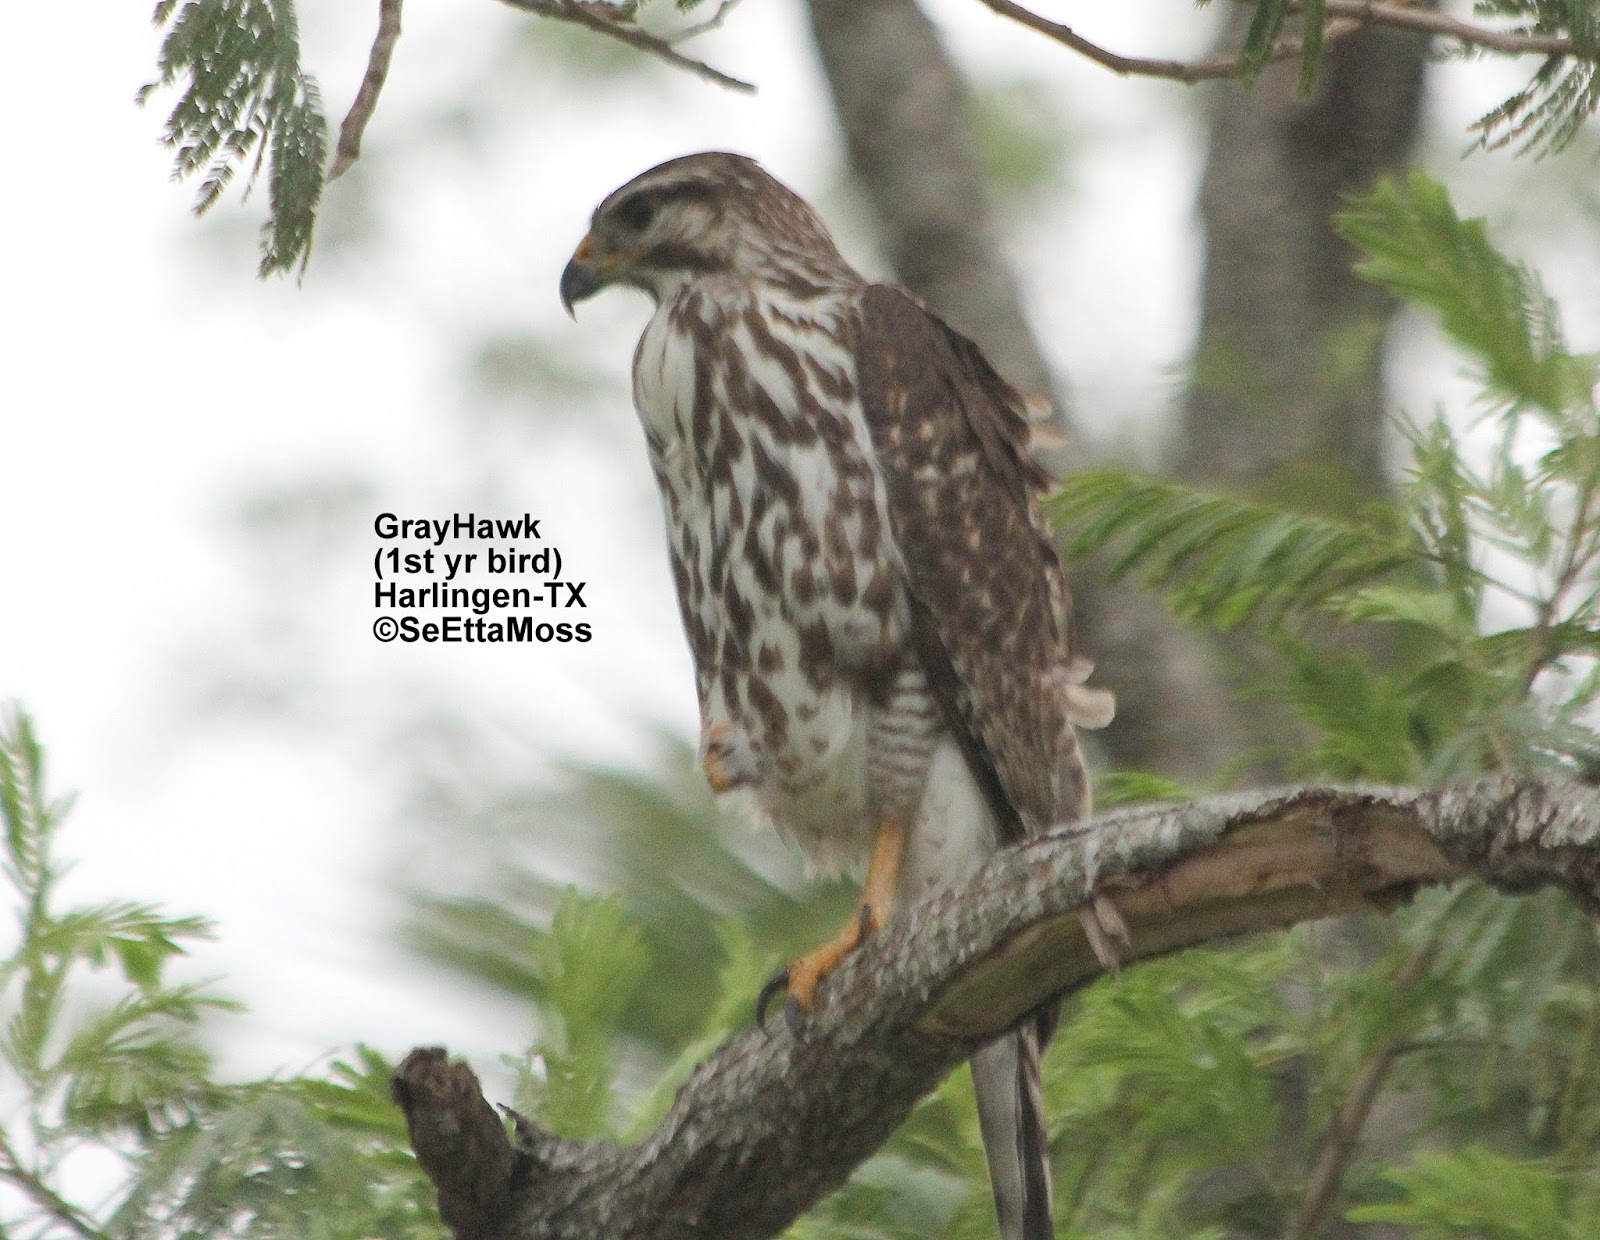 Birds and Nature: Gray Hawk, in immature plumage